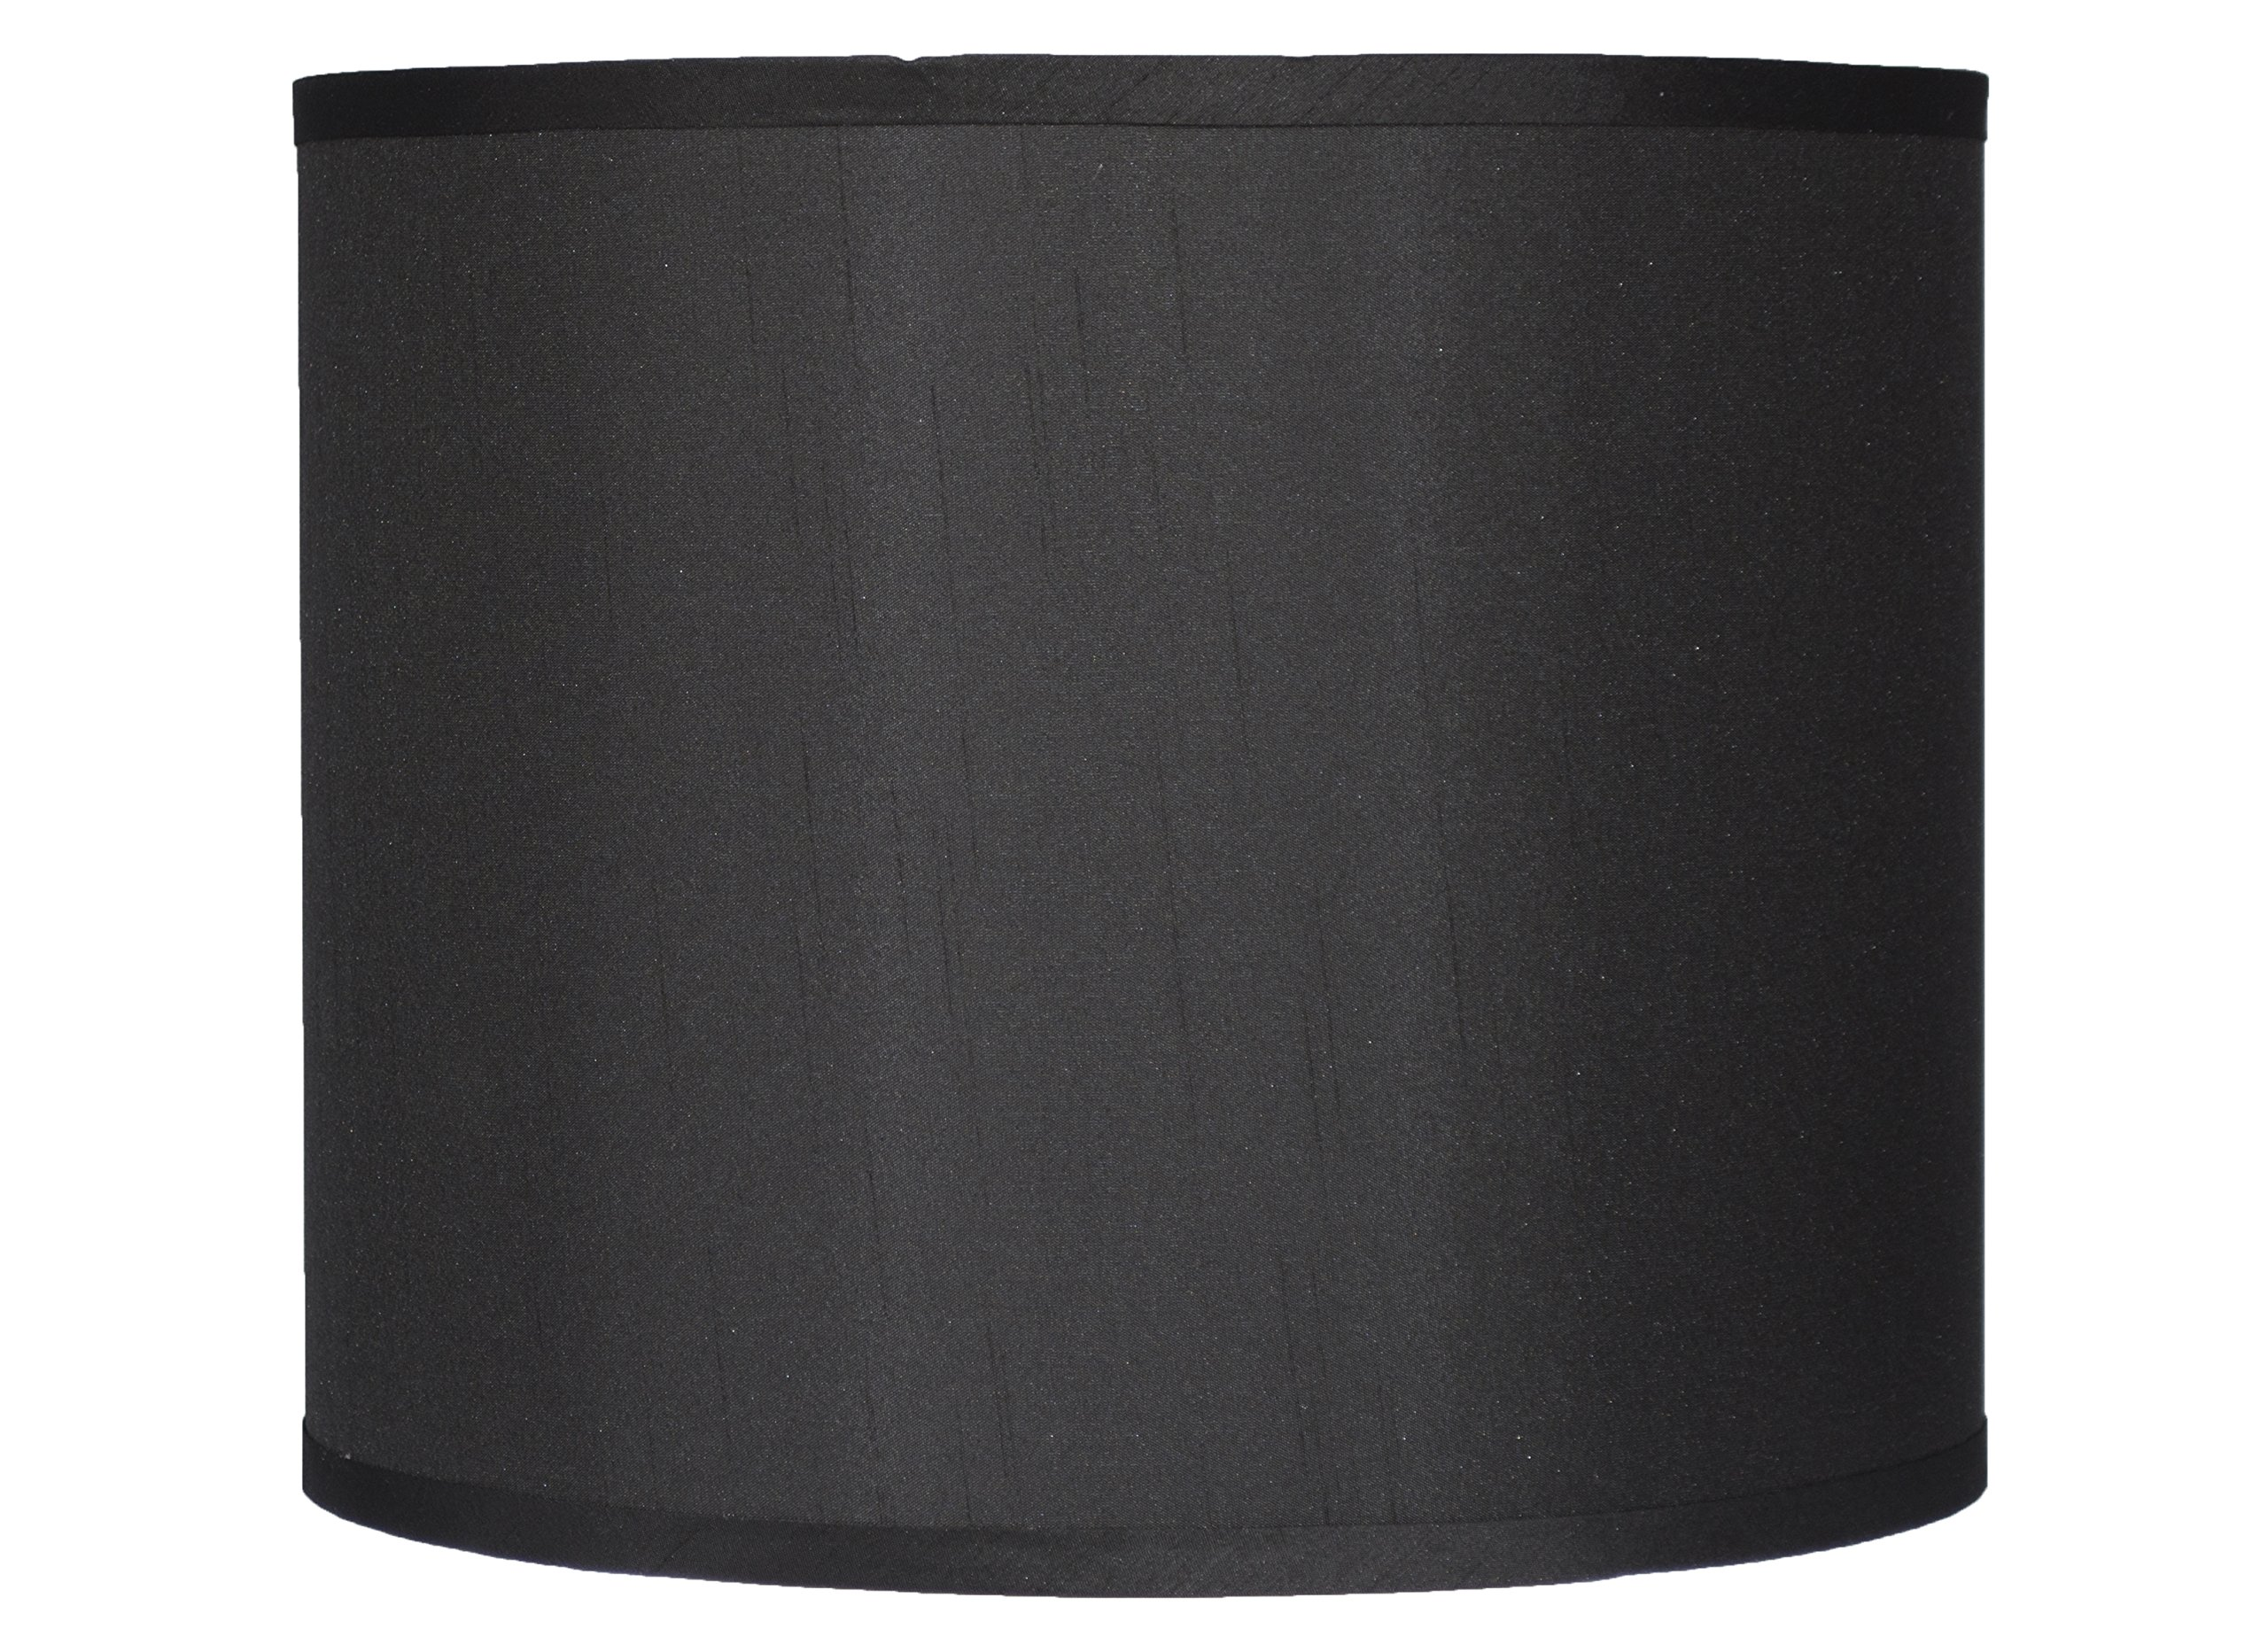 Urbanest Faux Silk Drum Lampshade, 12-inch By 12-inch By 10-inch, Black, Spider Fitter